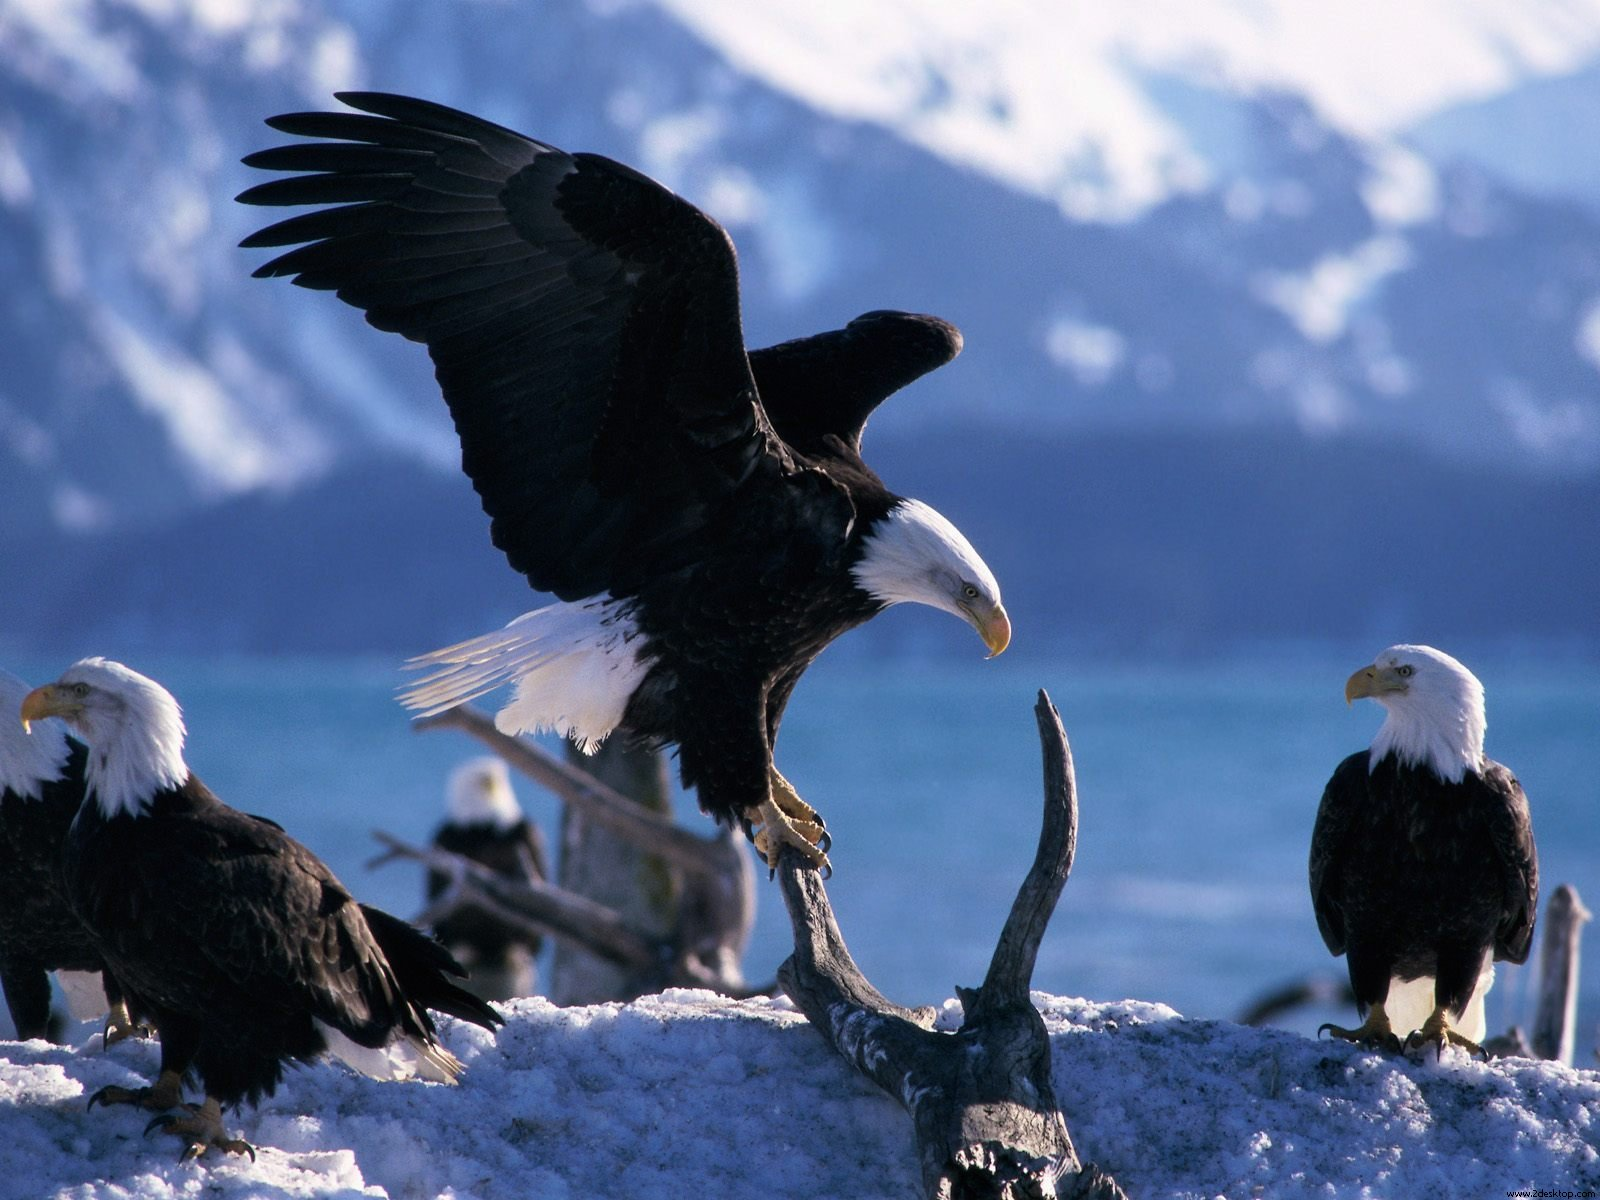 wings extended bald eagles wallpapers | wallpapers hd